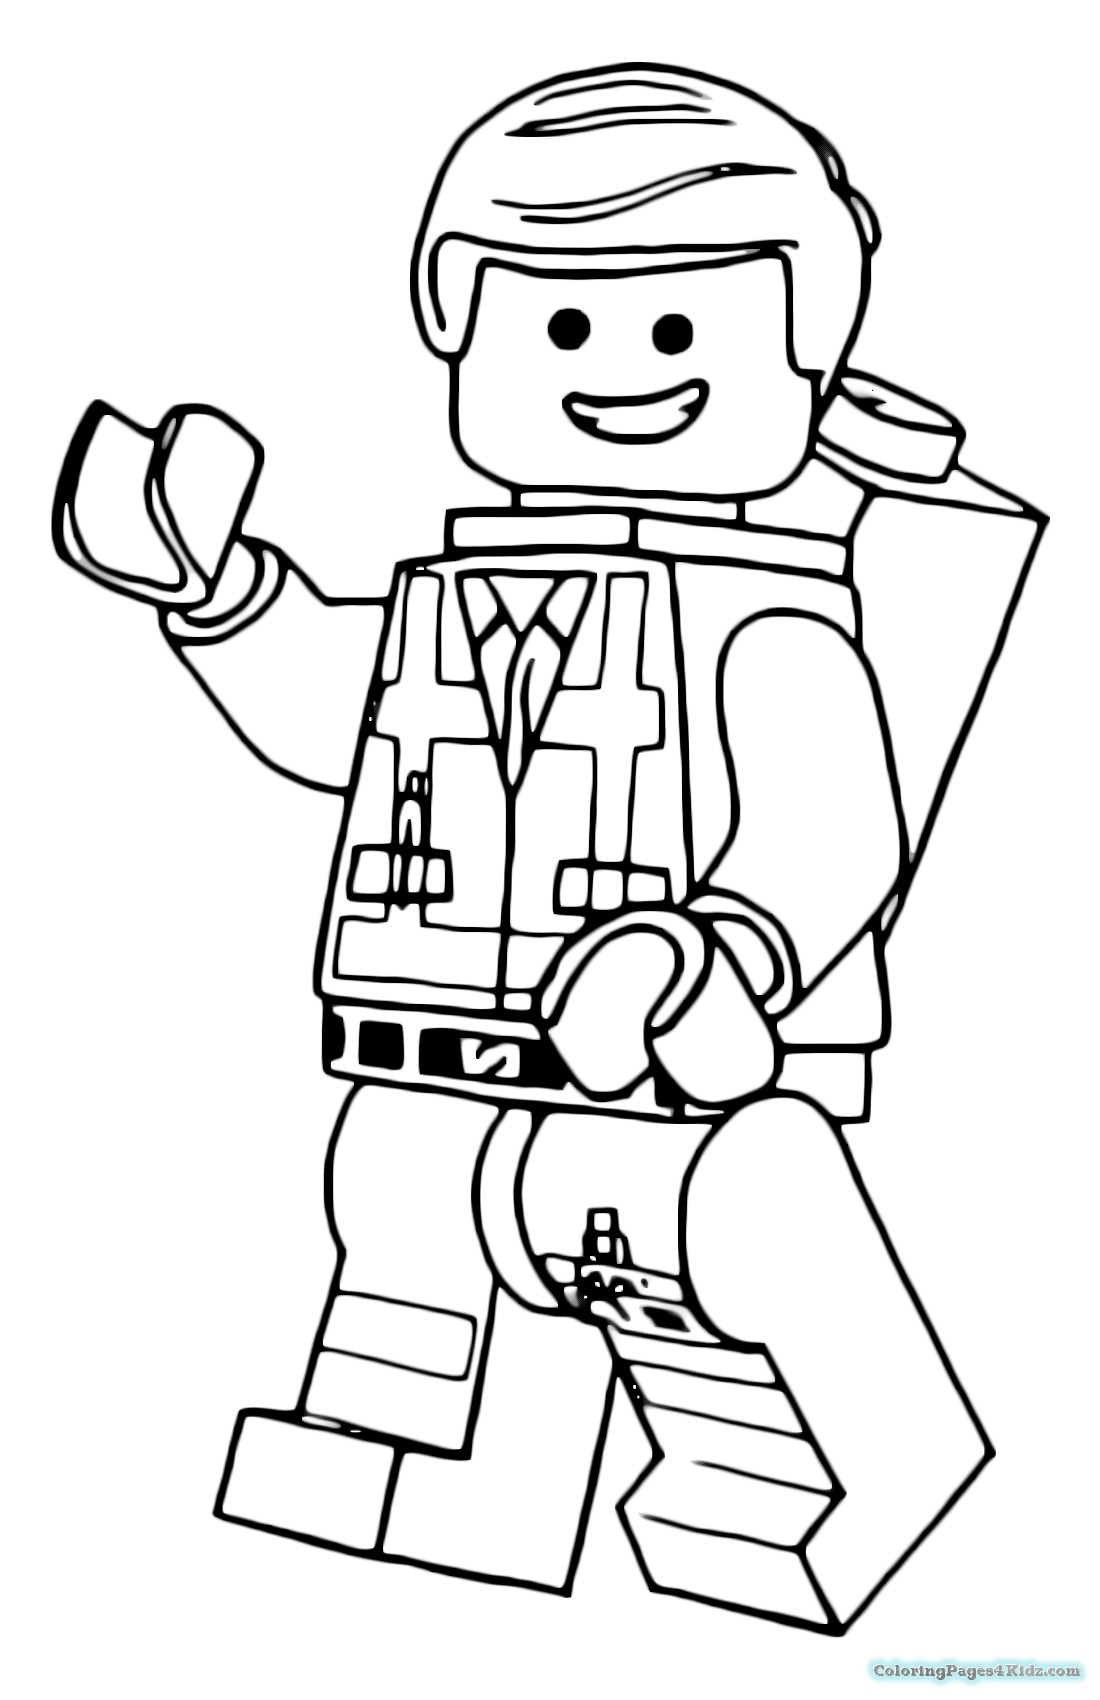 lego star wars coloring pages printable lego star wars coloring pages best coloring pages for kids pages coloring printable wars star lego